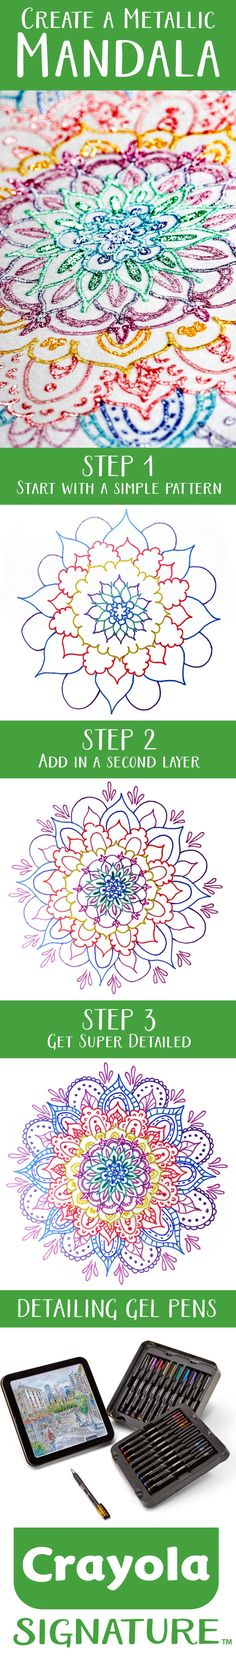 Create a Metallic Mandala with Crayola Signature Series Gel Pens!